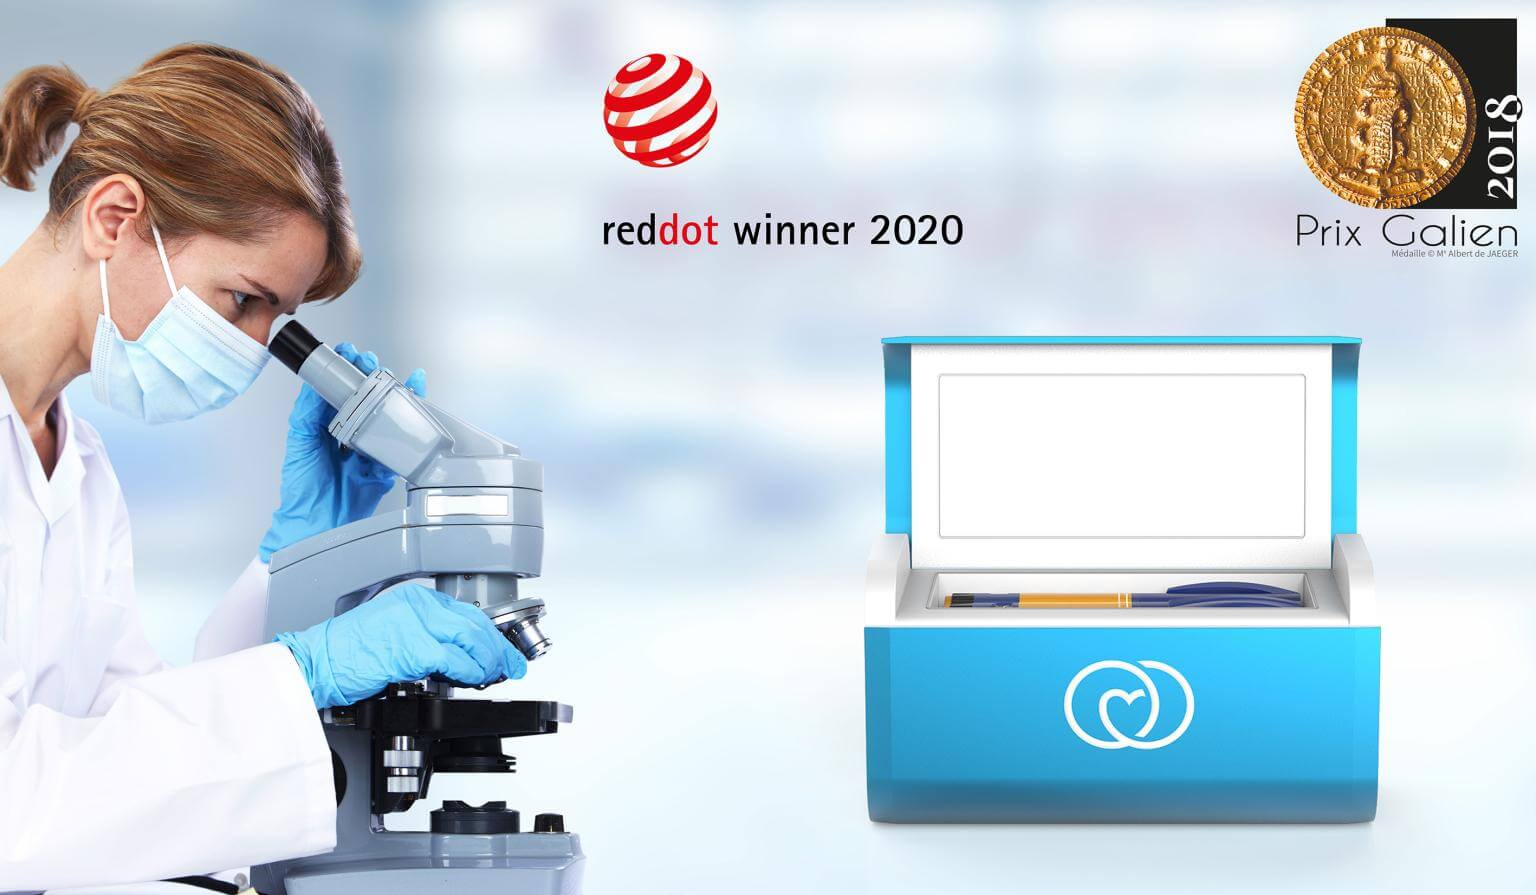 LifeinaBox reddot winner 2020